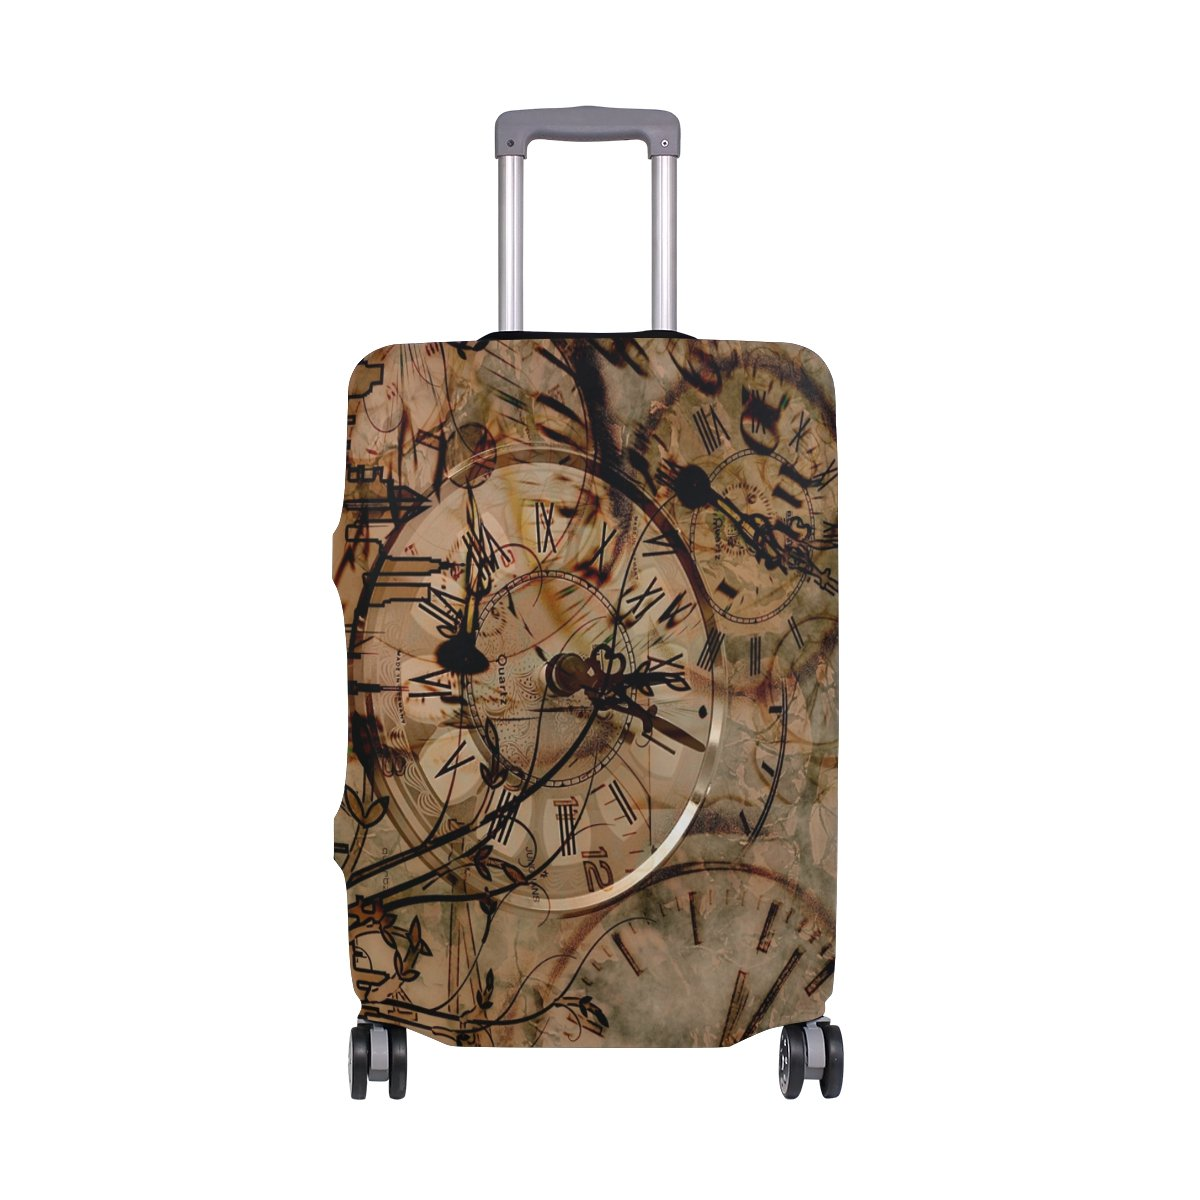 Luggage Protective Covers with Clover Weed Tile Washable Travel Luggage Cover 18-32 Inch